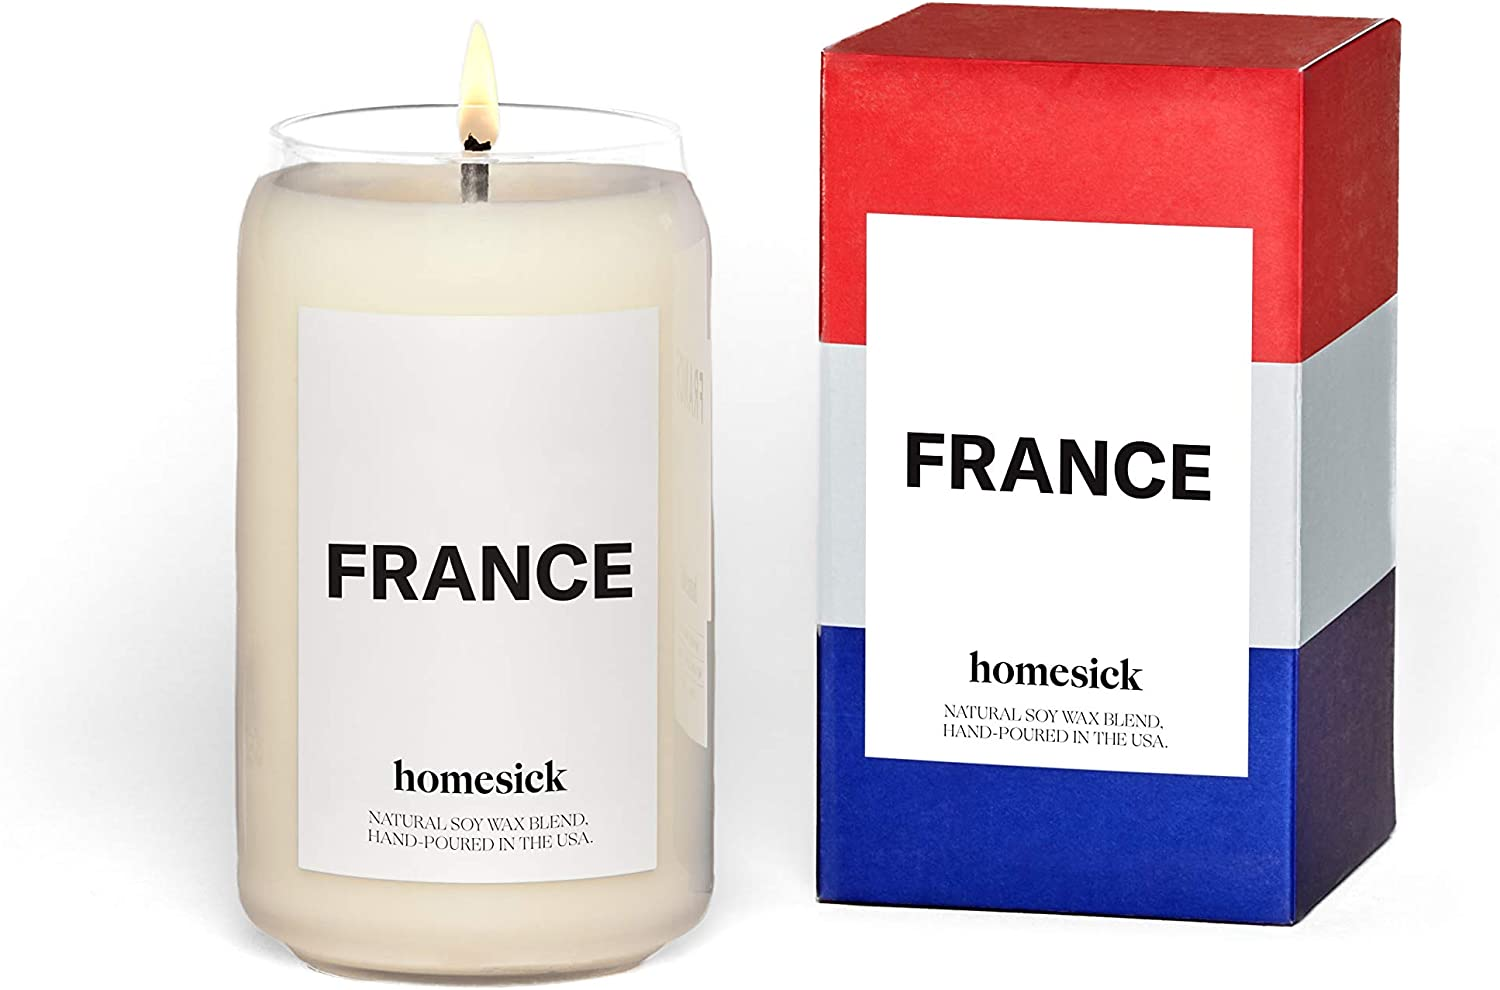 Homesick Scented Candle, France (2020 Version)